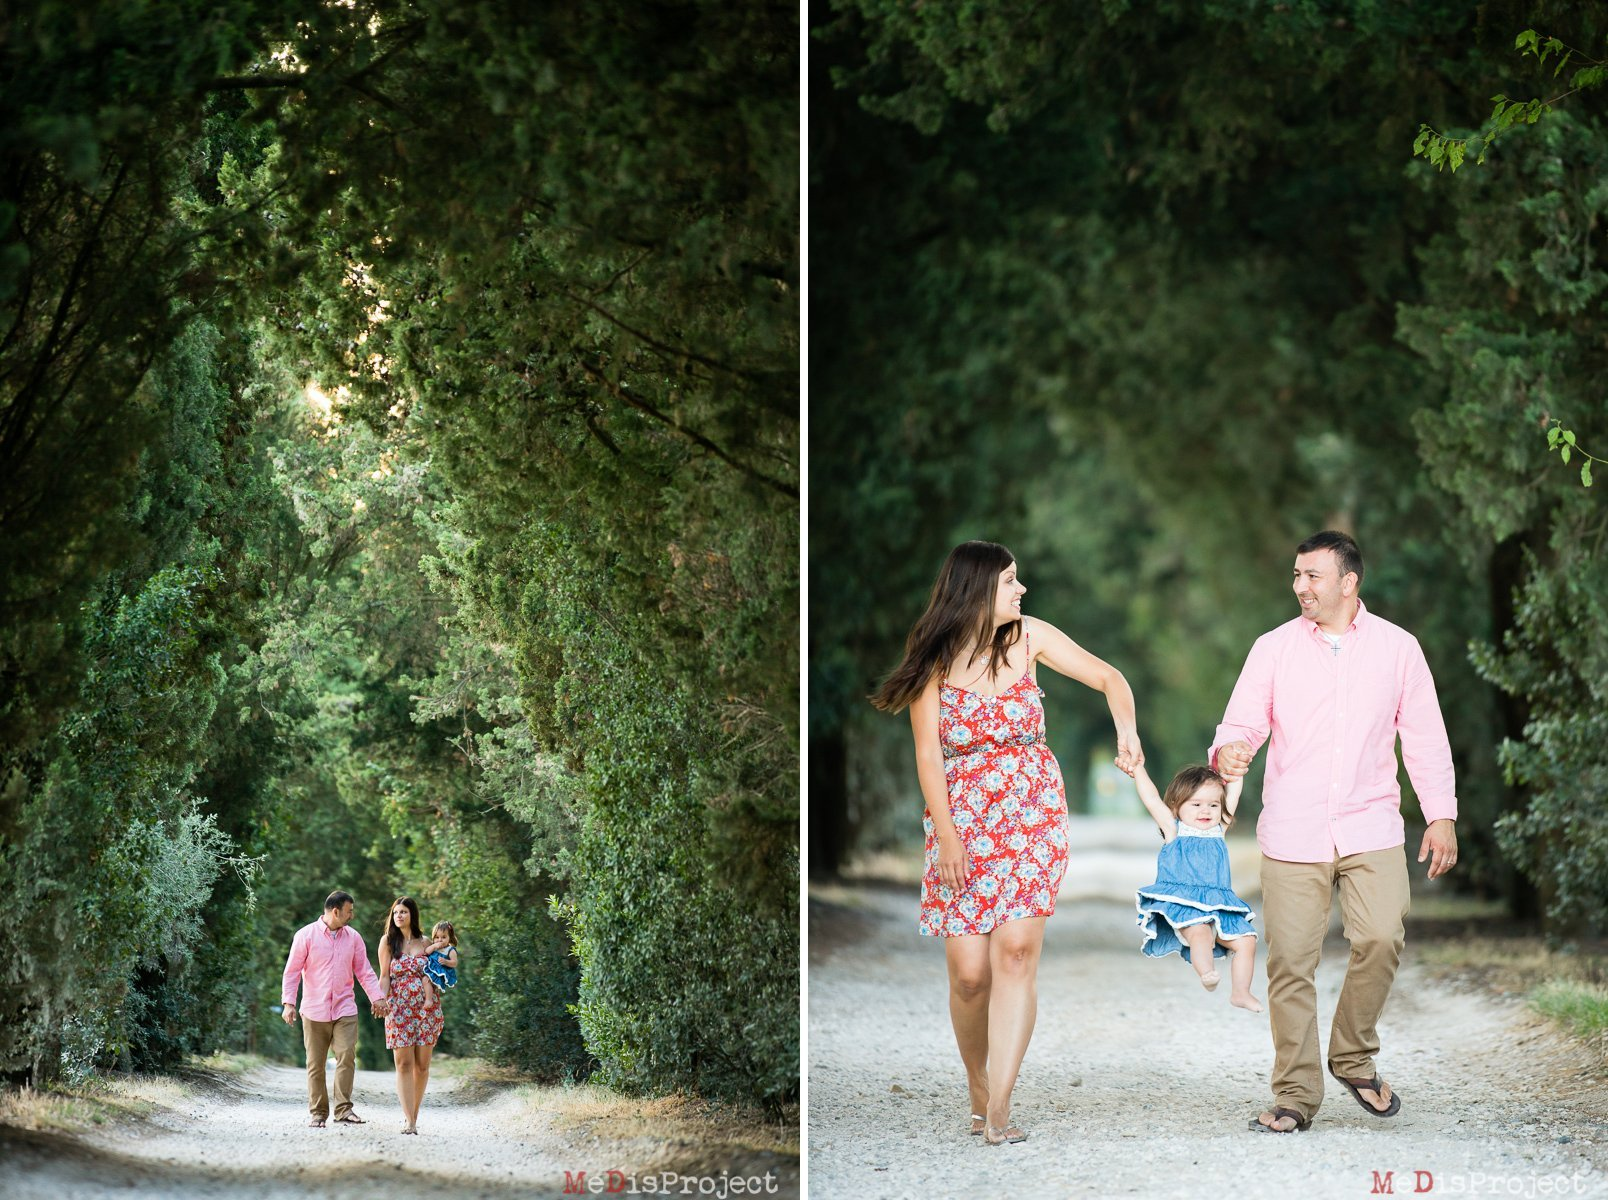 medisproject family photography in tuscany 022 Family Portrait Photography in Tuscany | Tokatlyan Family